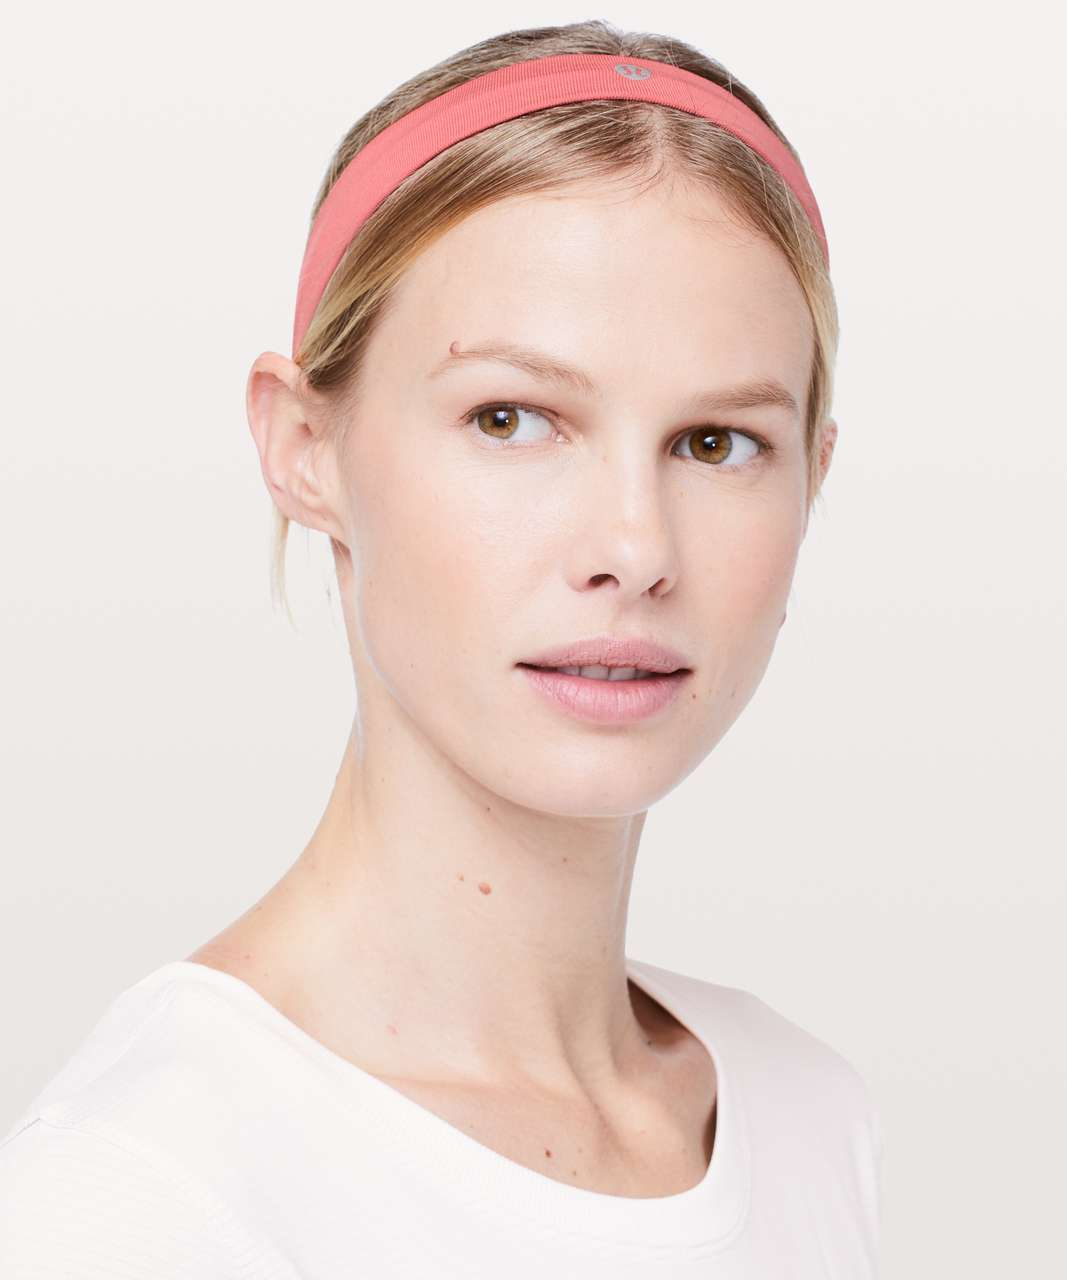 Lululemon Cardio Cross Trainer Headband - Blush Coral / Blush Coral